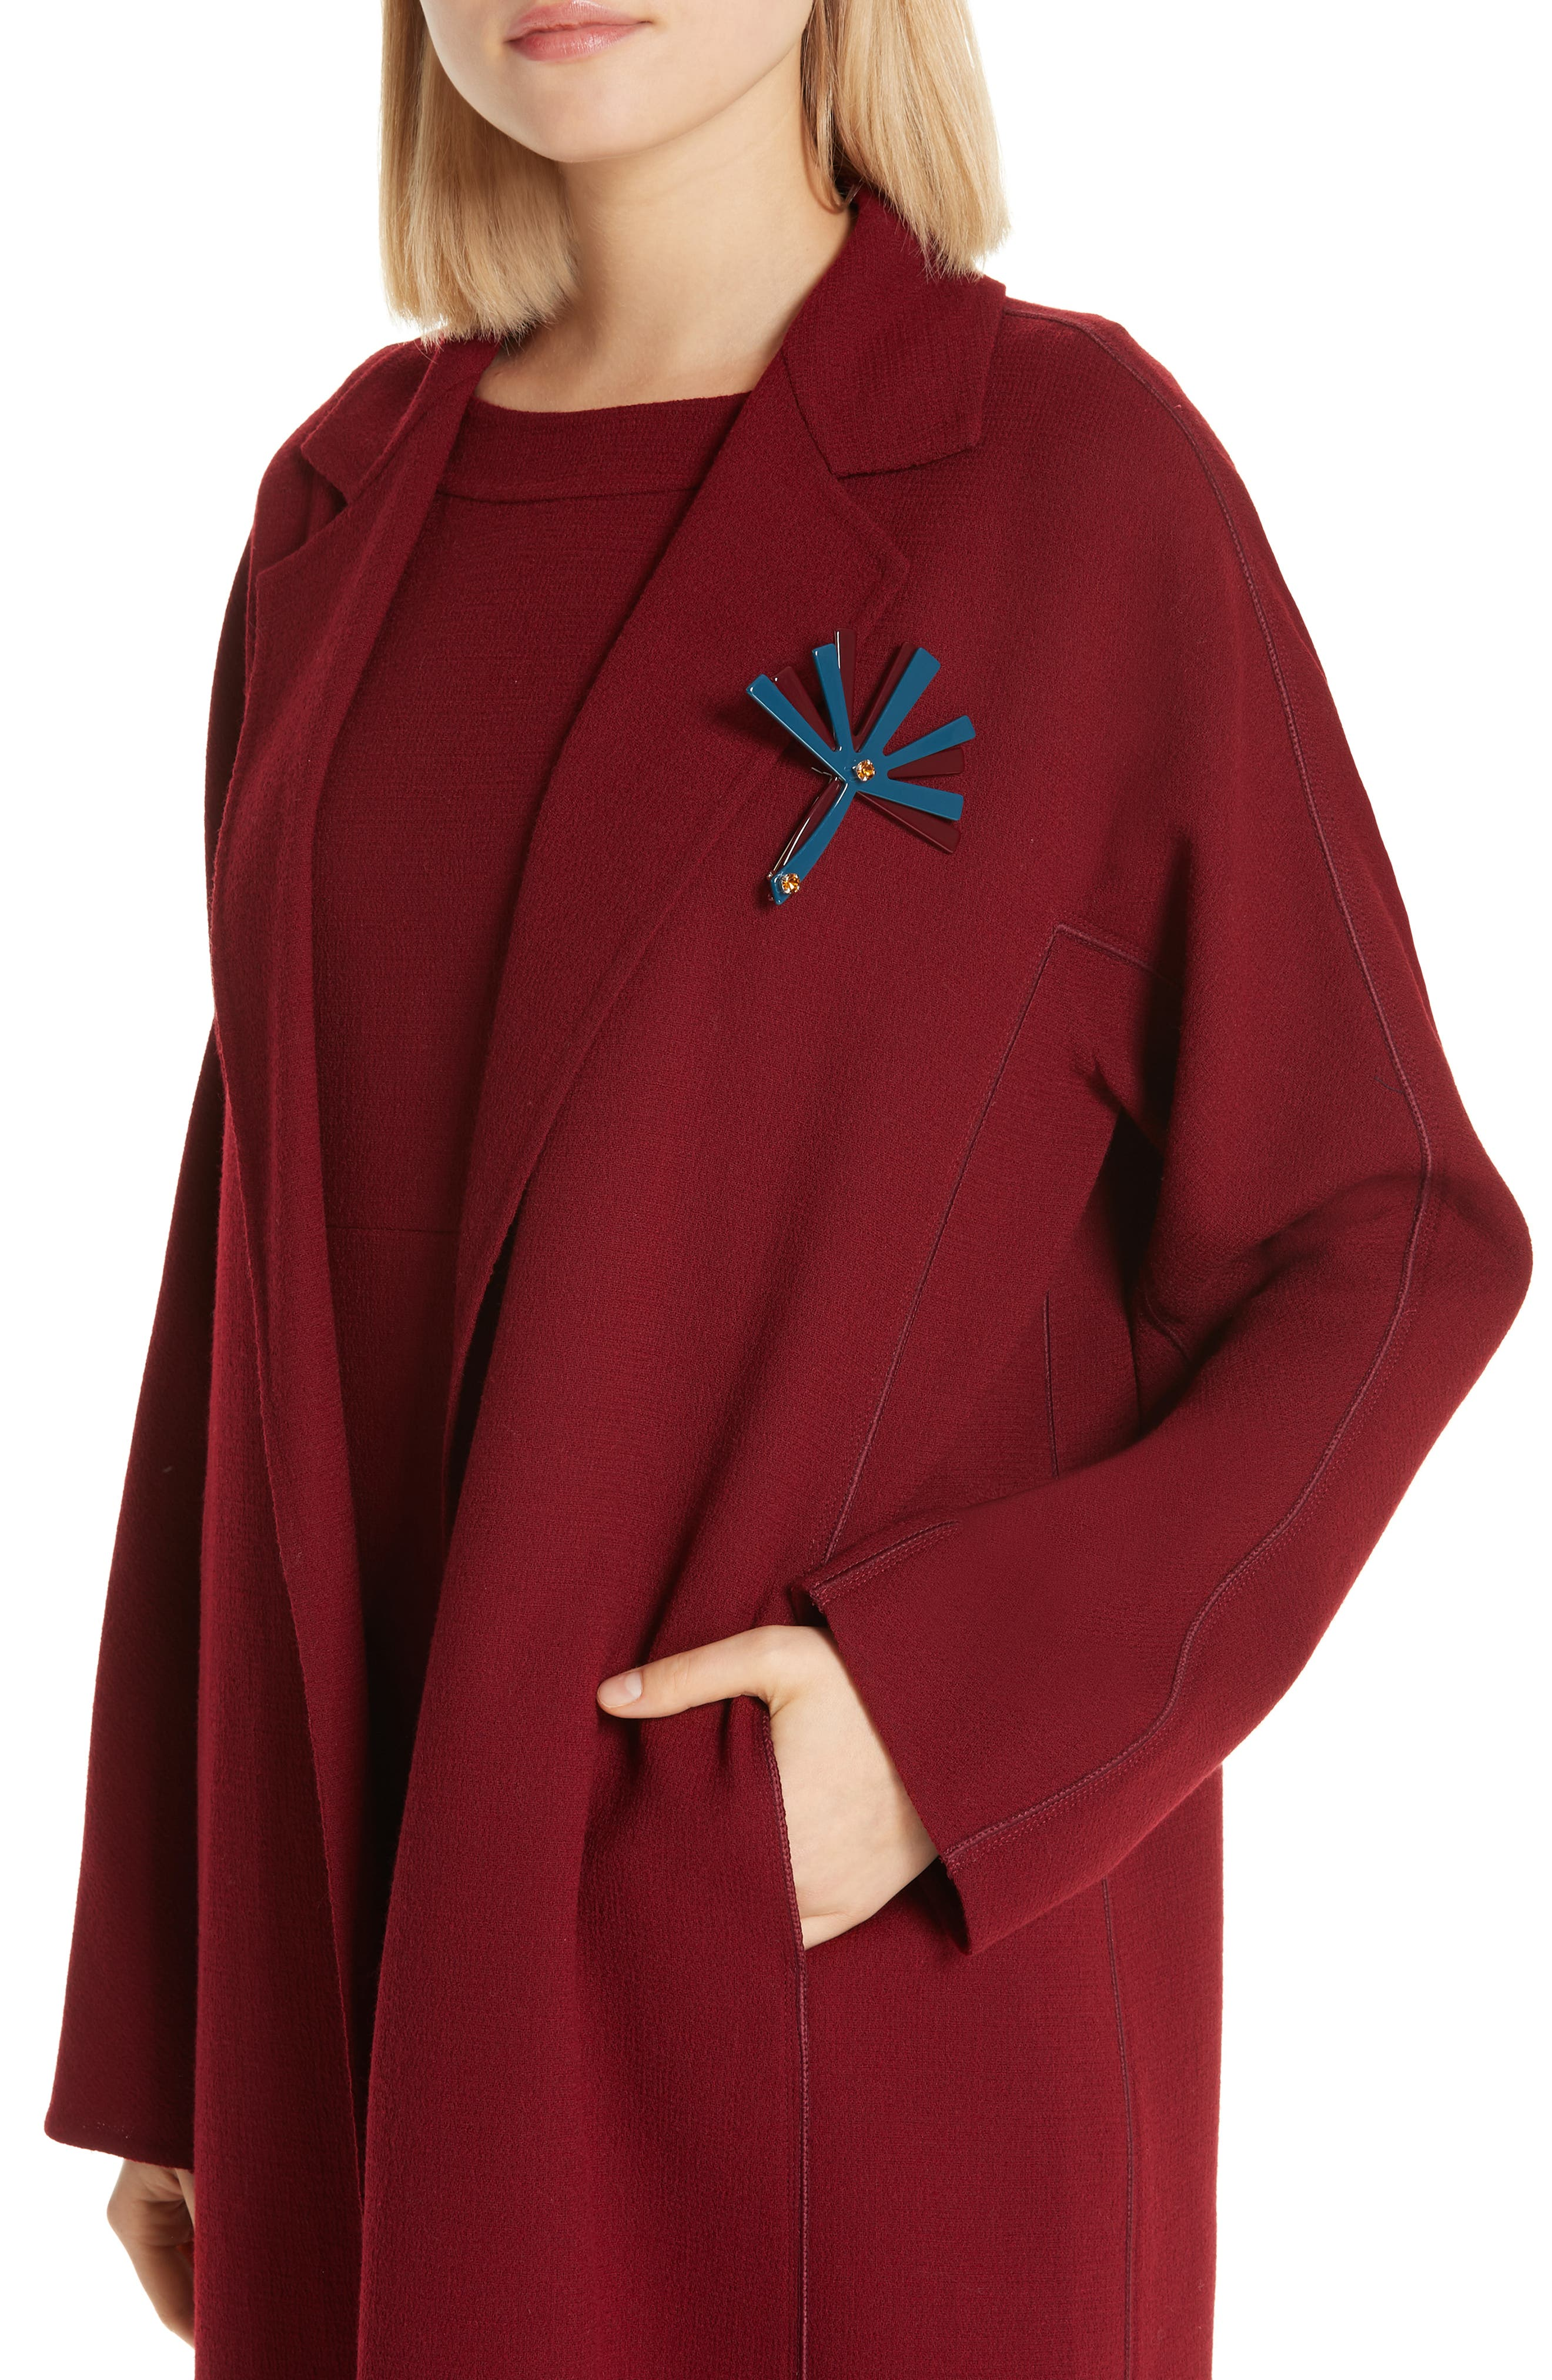 Wool Jacket with Pin,                             Alternate thumbnail 4, color,                             600